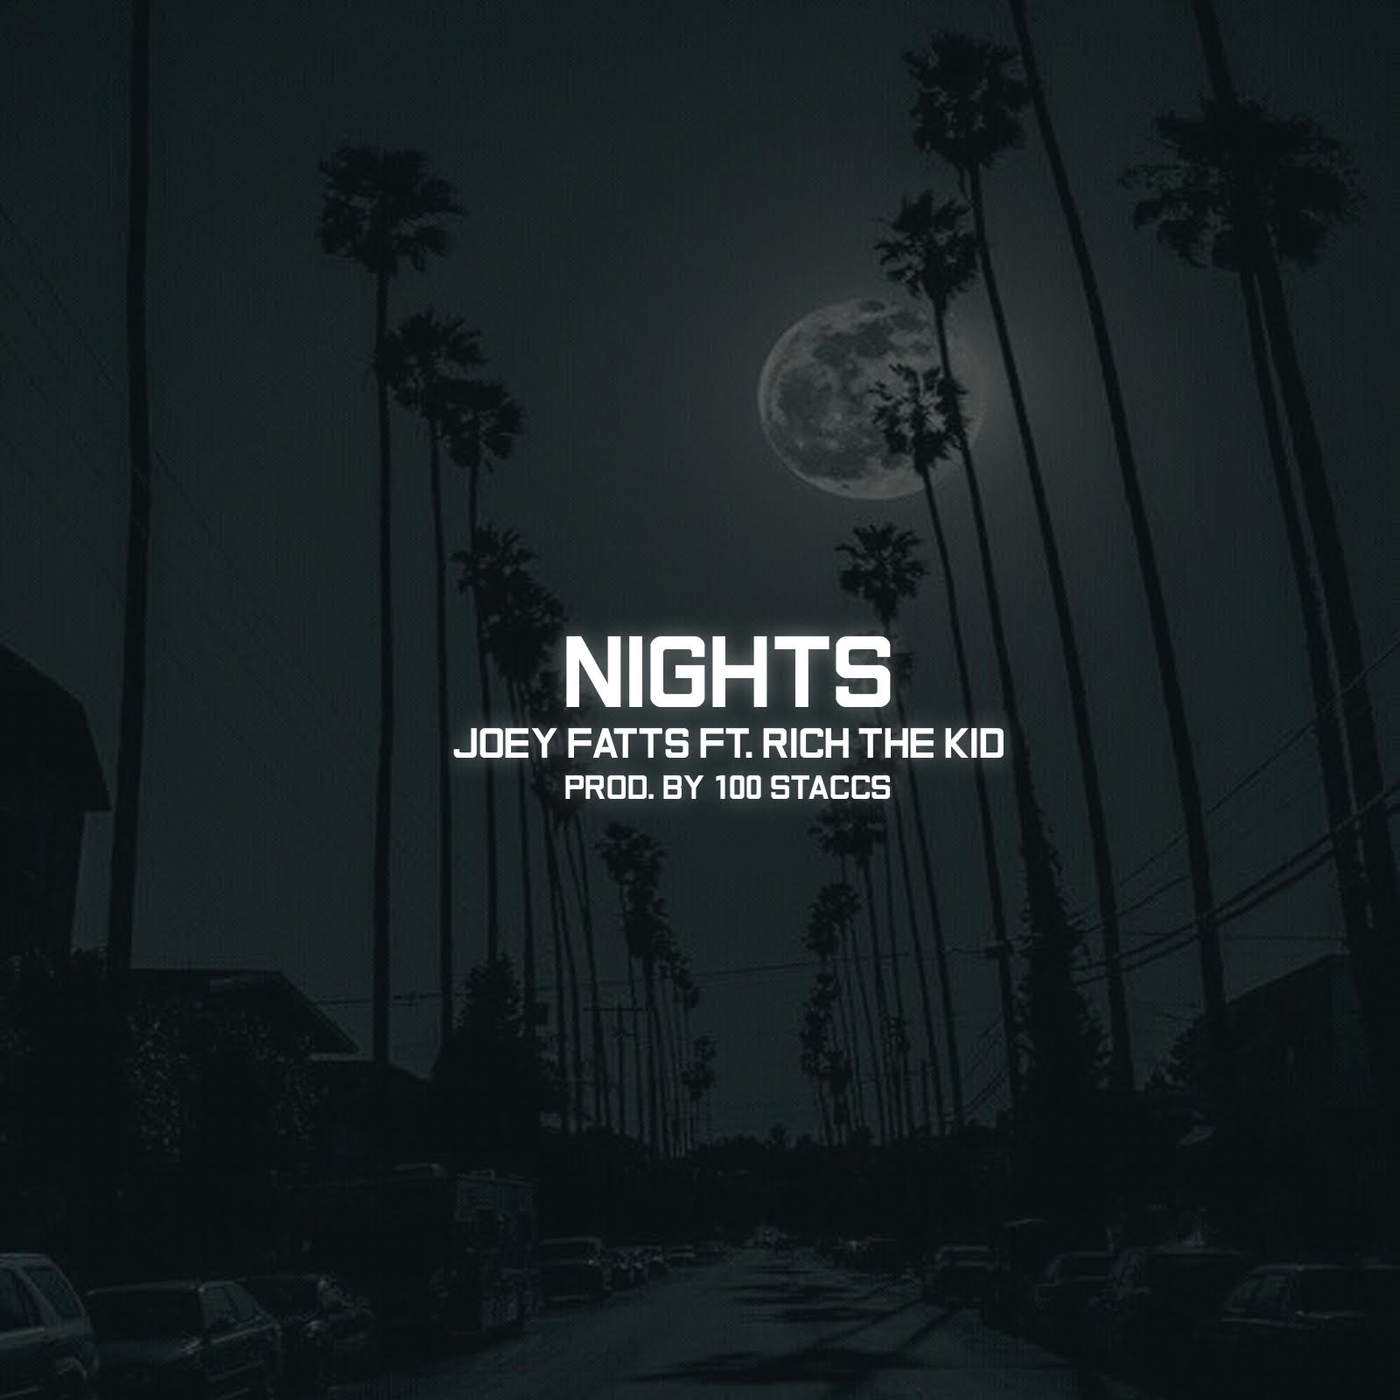 Joey Fatts - Nights (feat. Rich the Kid) - Single Cover